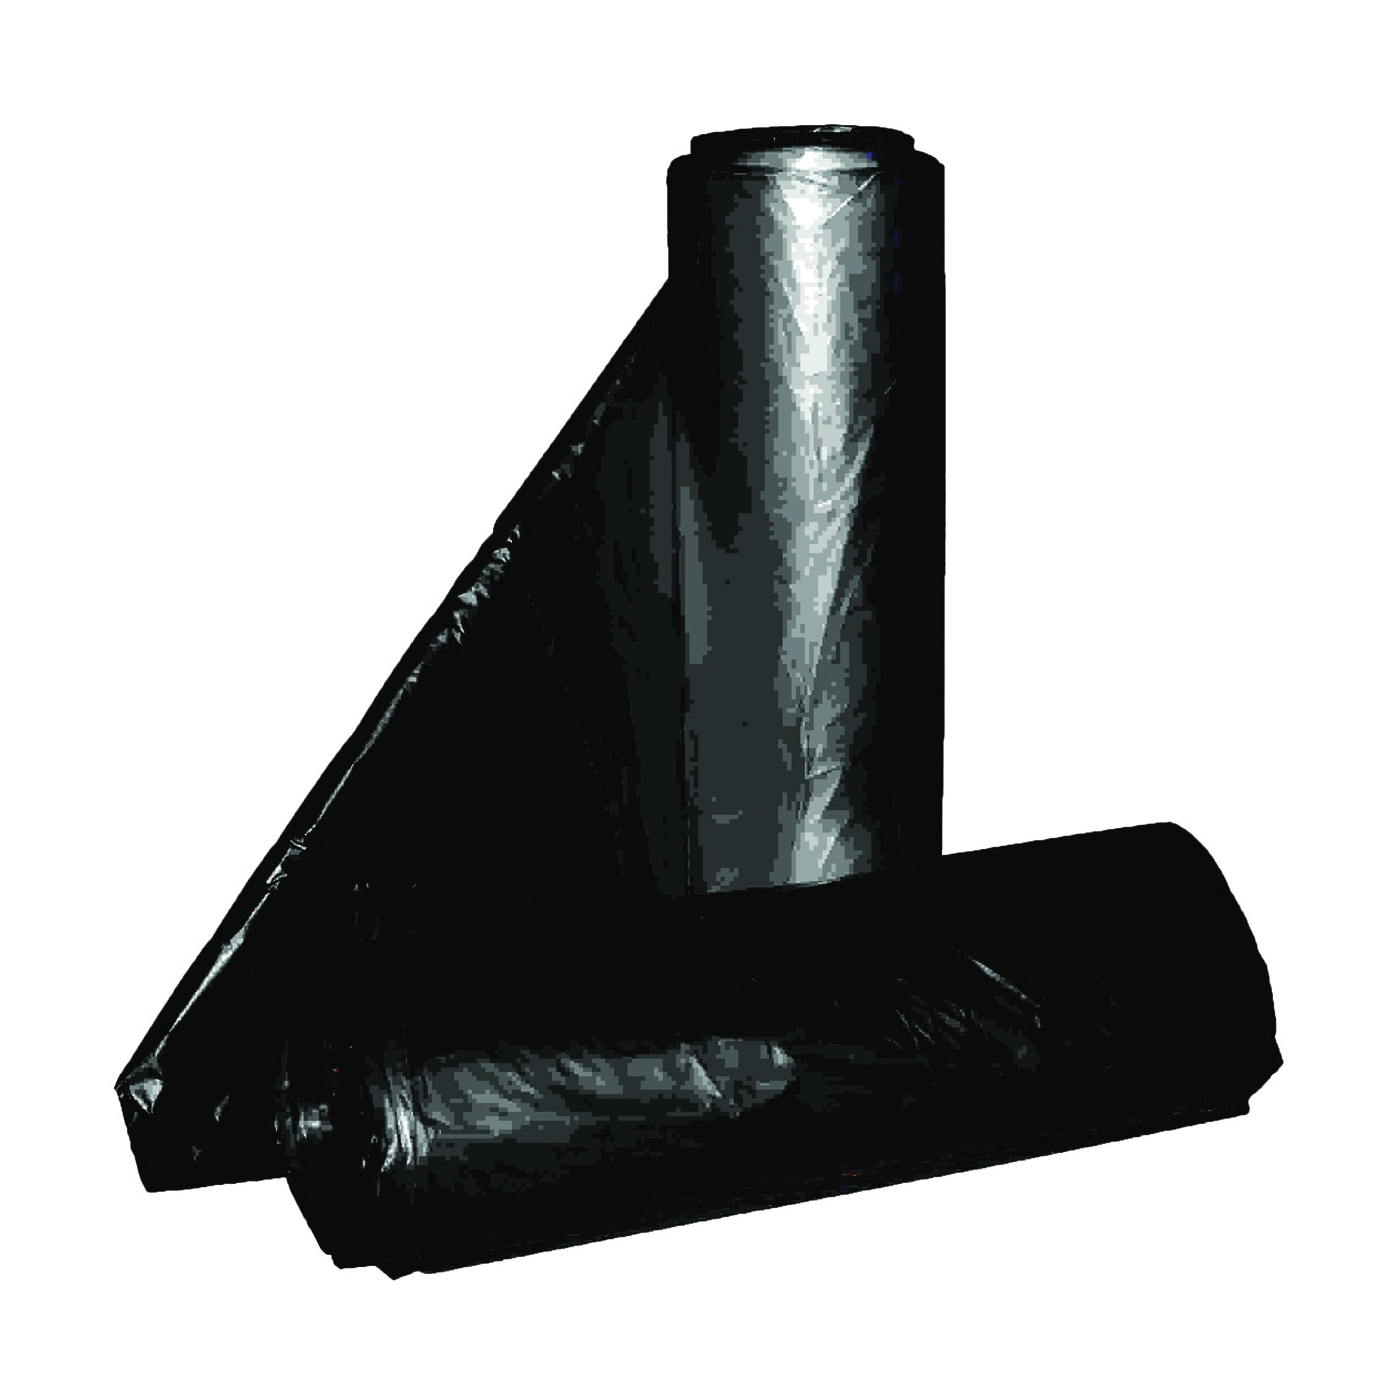 Picture of ALUF PLASTICS RL Series RL-3036XH Can Liner, 20 to 30 gal Capacity, Repro Blend, Black